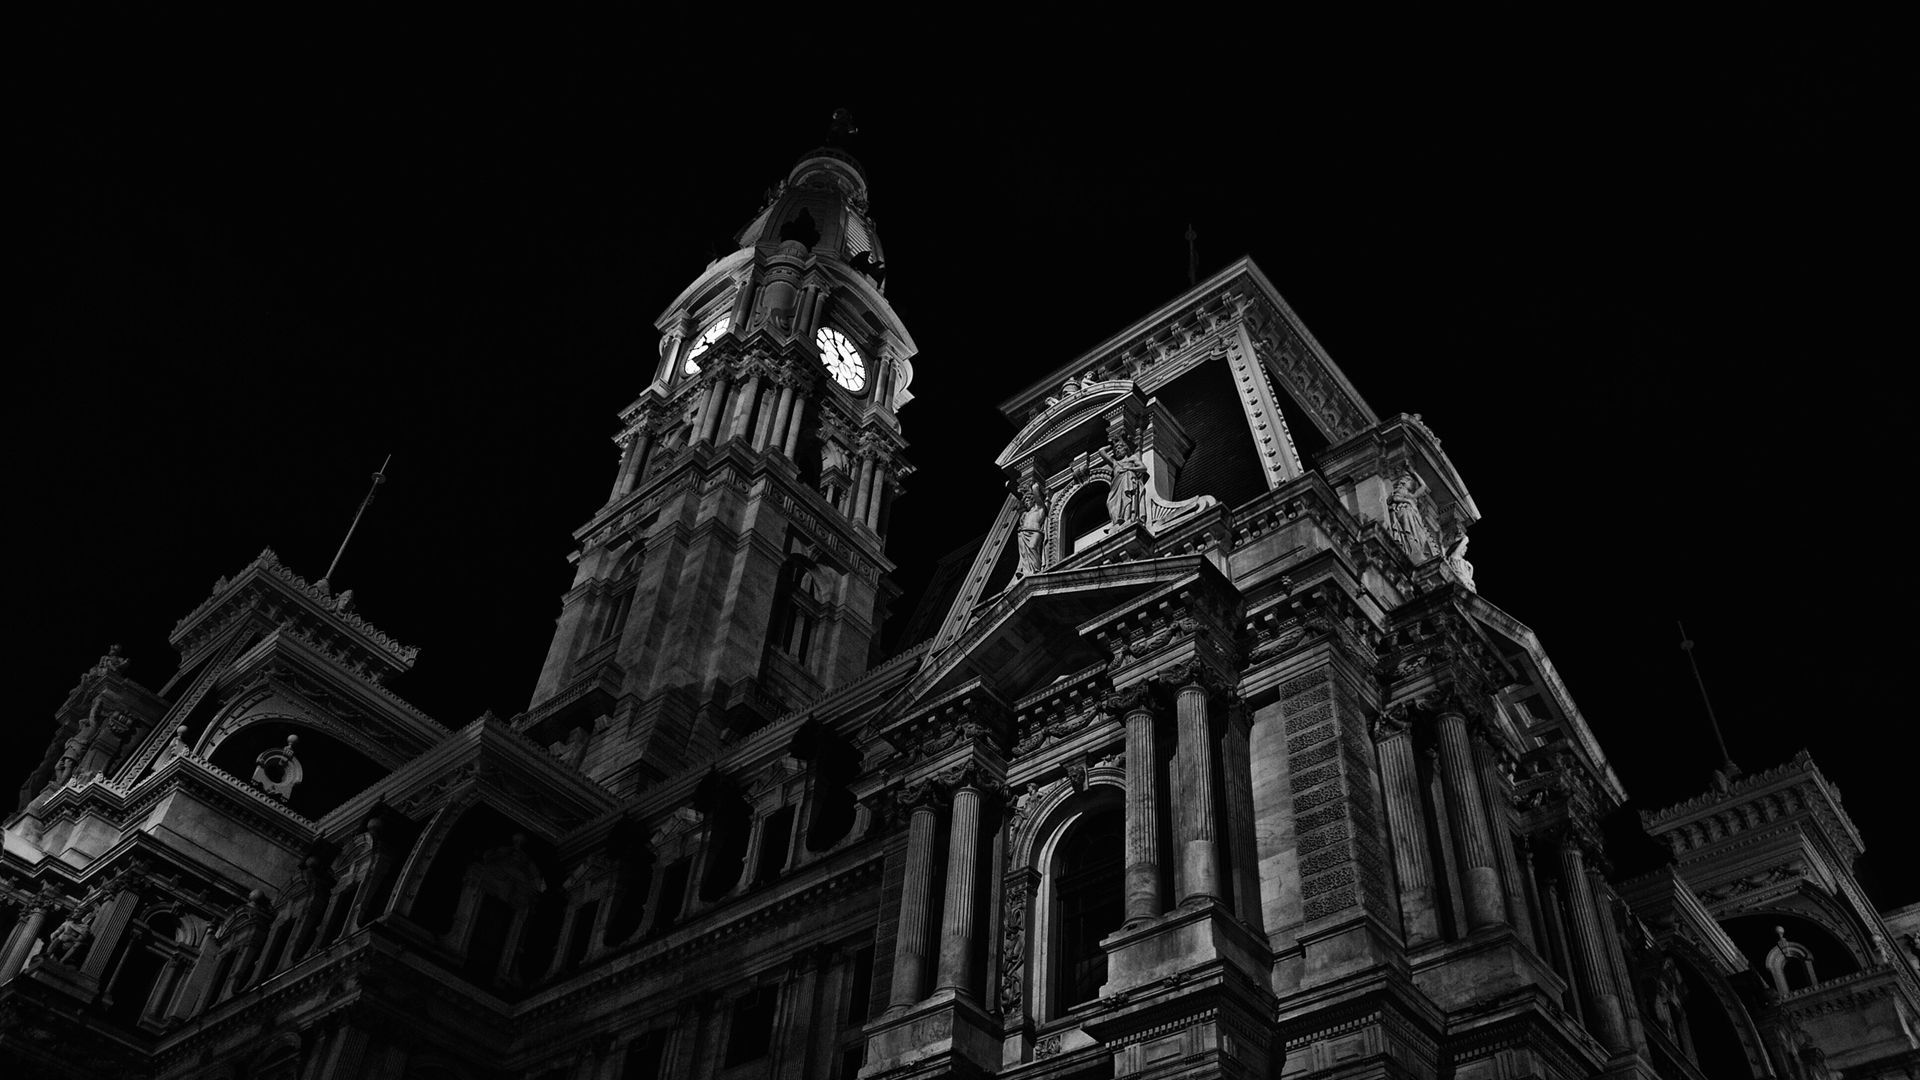 download black and white hd building full in wallpaper